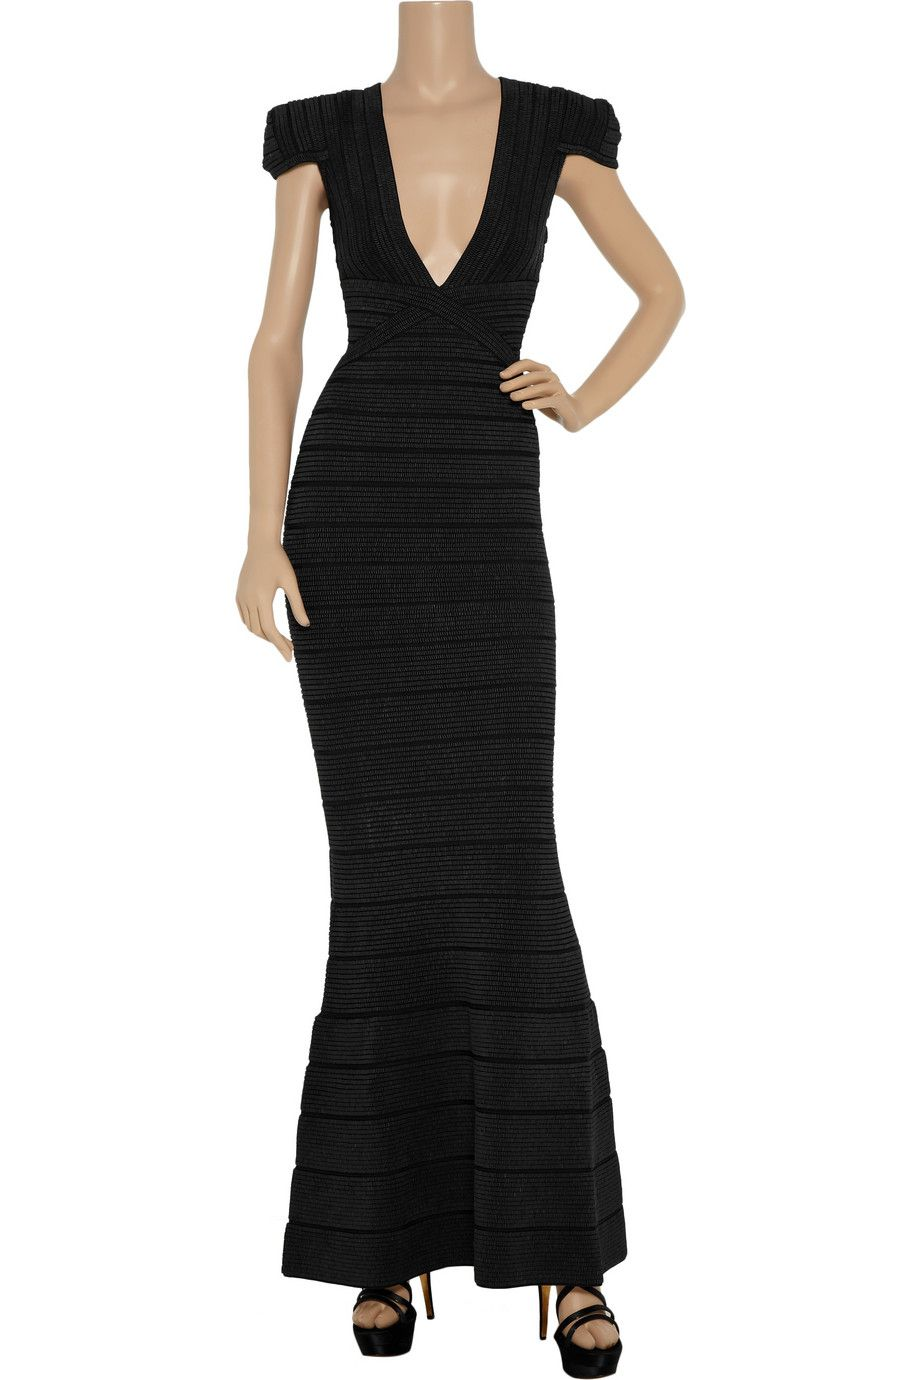 Featuring exquisite beading hervé légerus black bandage gown is an